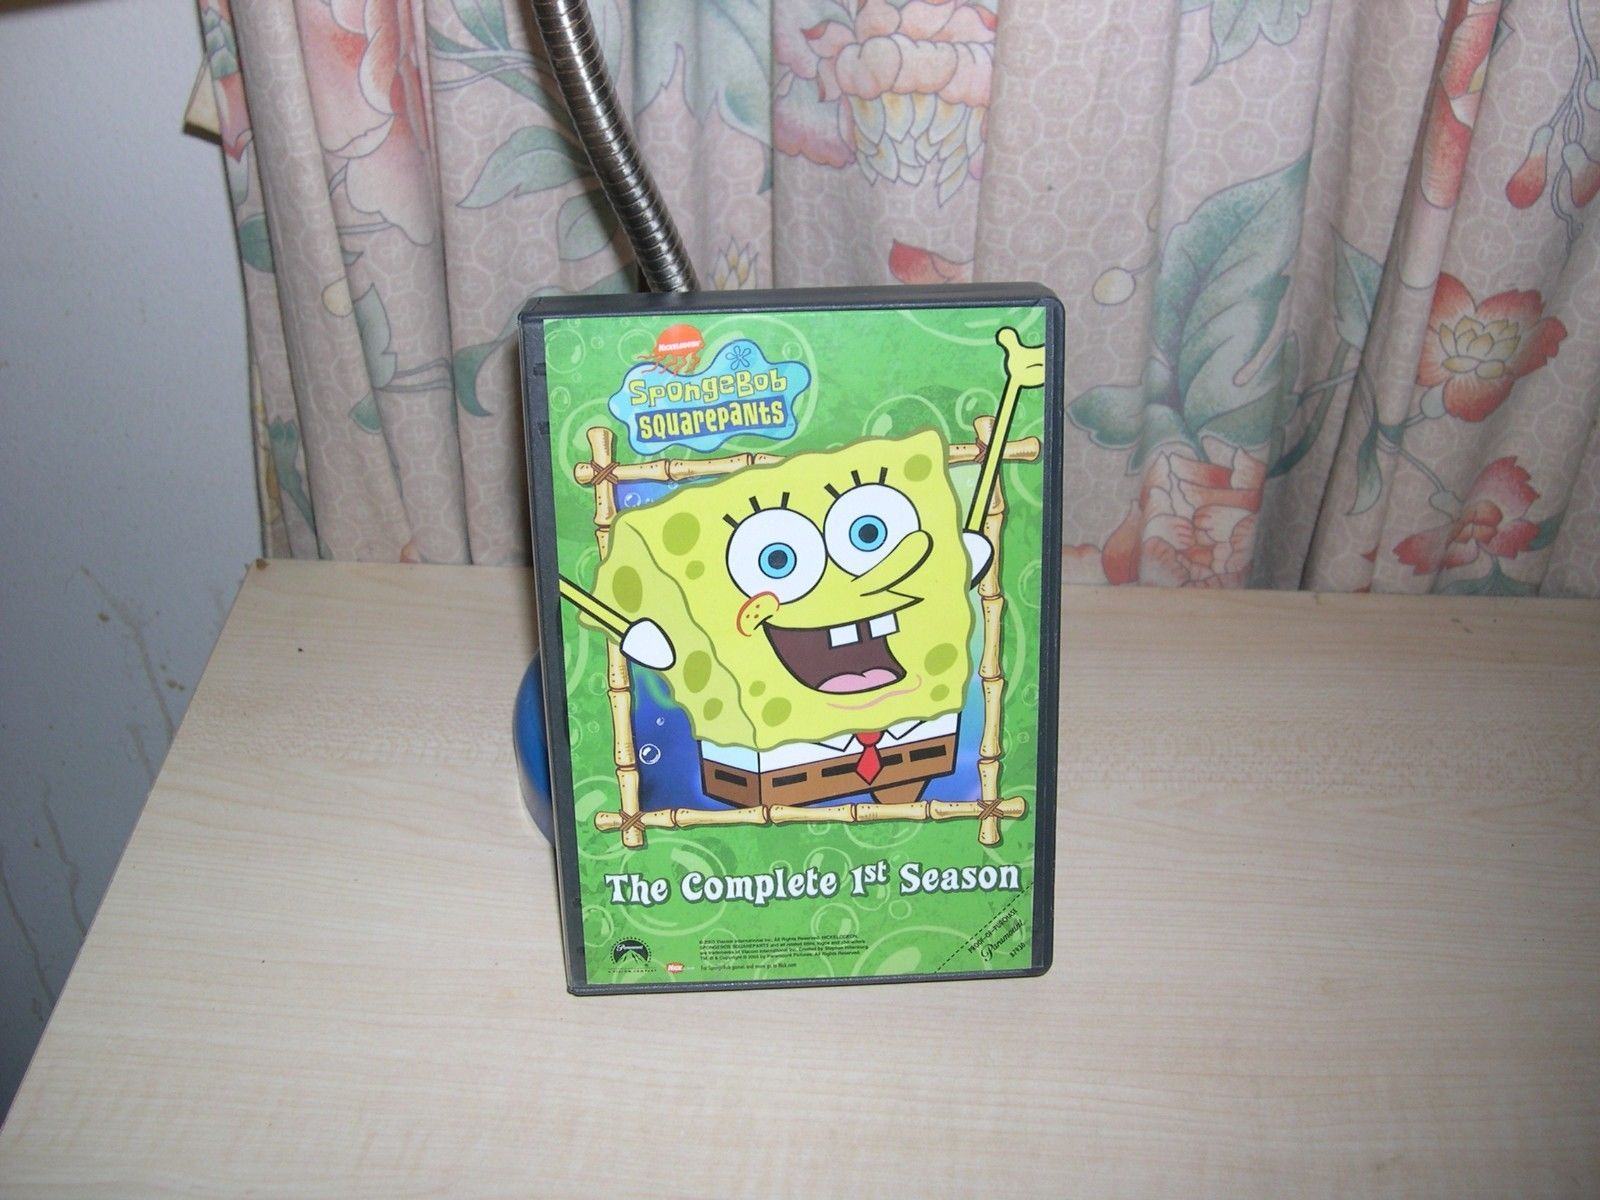 SPONGEBOB SQUAREPANTS SEASON 1 (DVD 2003 3-Disc Set)  https://t.co/rQdQ3DbZKb https://t.co/GsWcC3QgUL